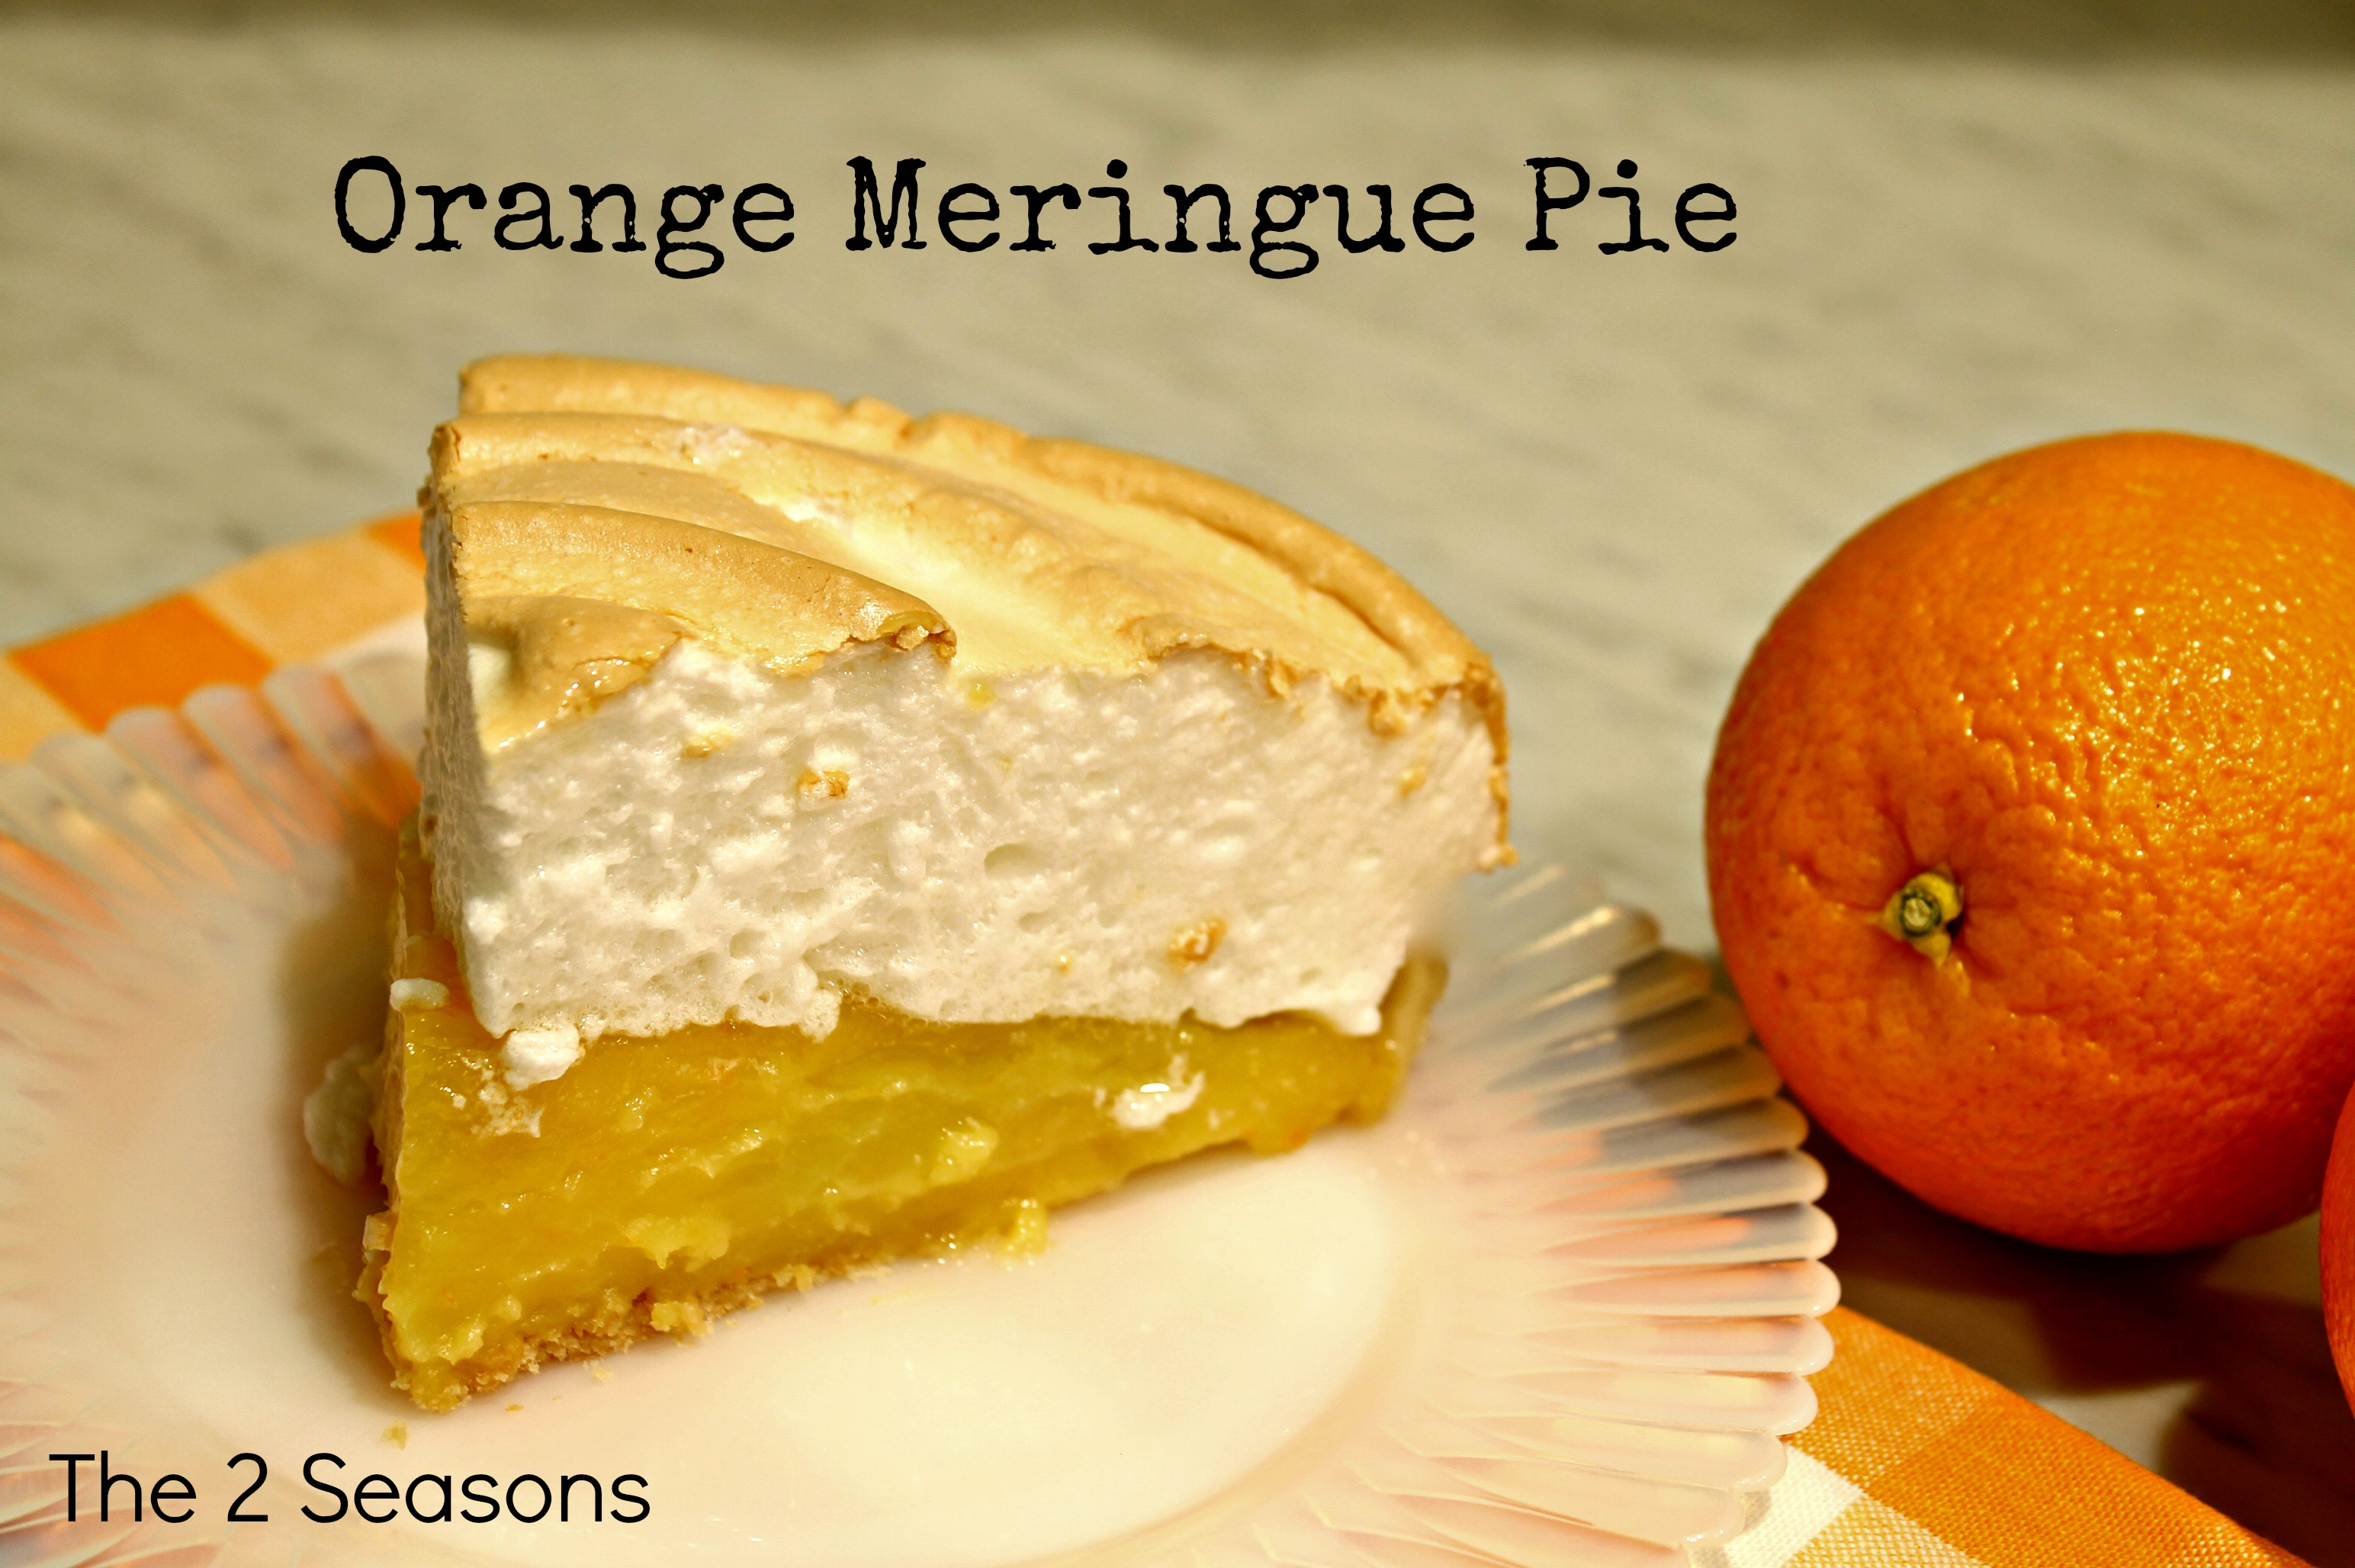 Orange Meringue Pie - Orange Meringue Pie